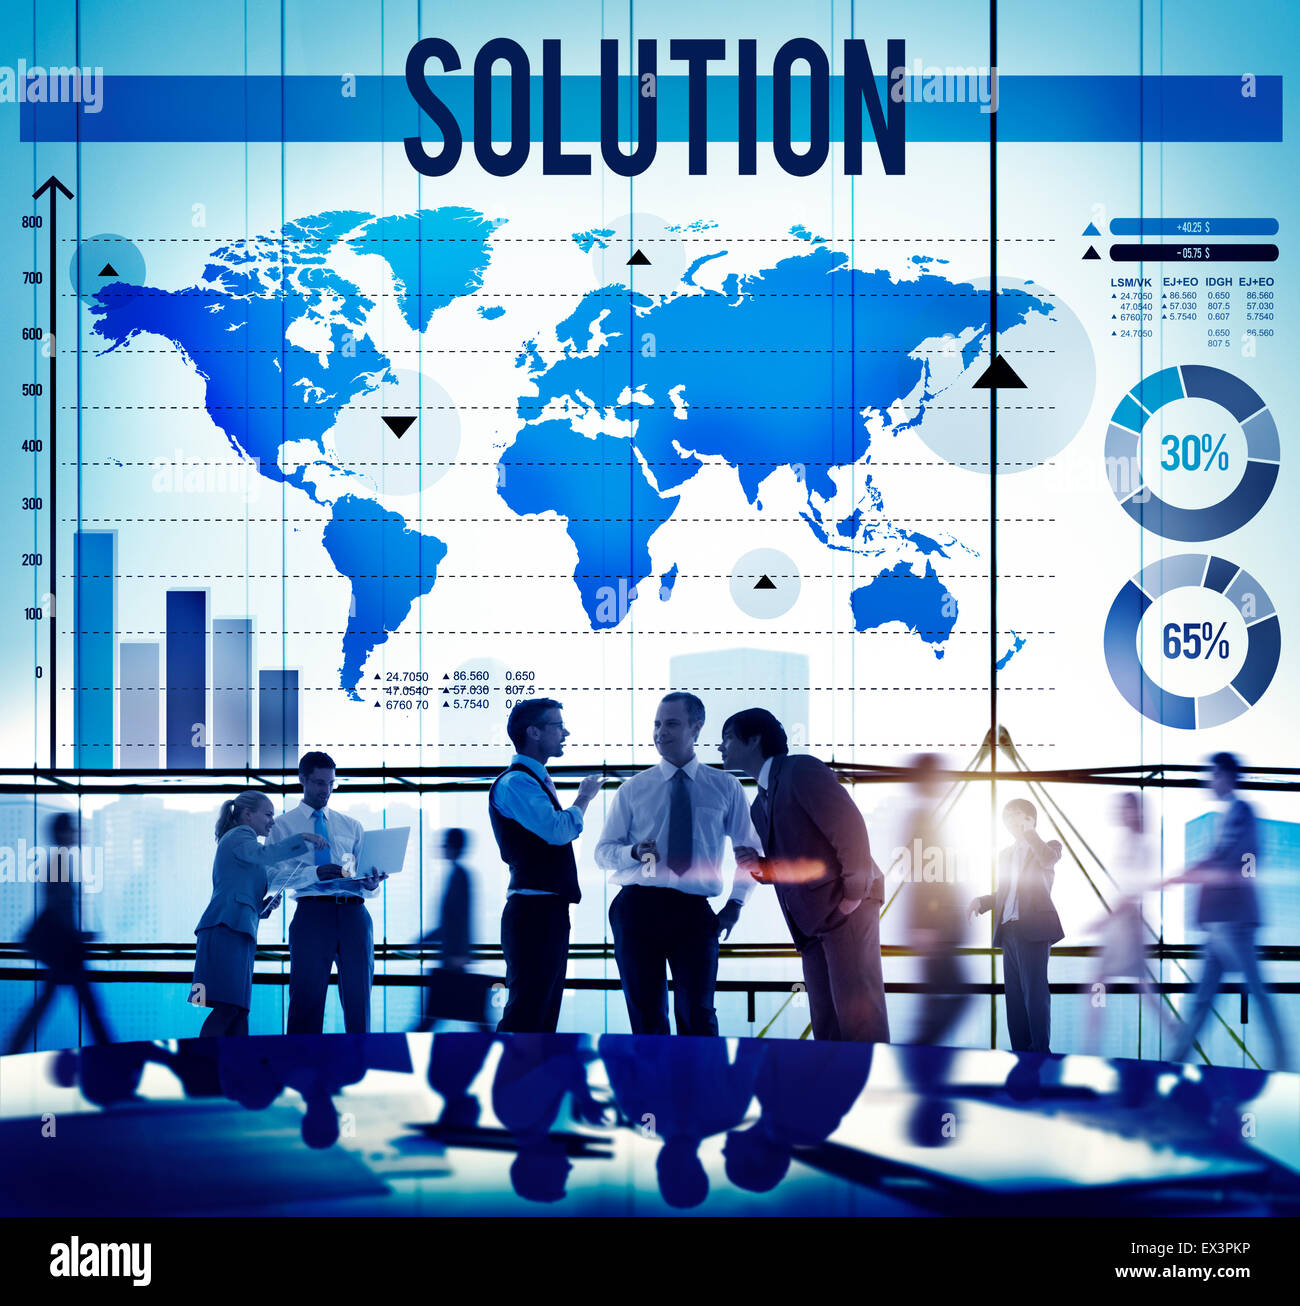 solution problem solving decision answers concept stock photo solution problem solving decision answers concept